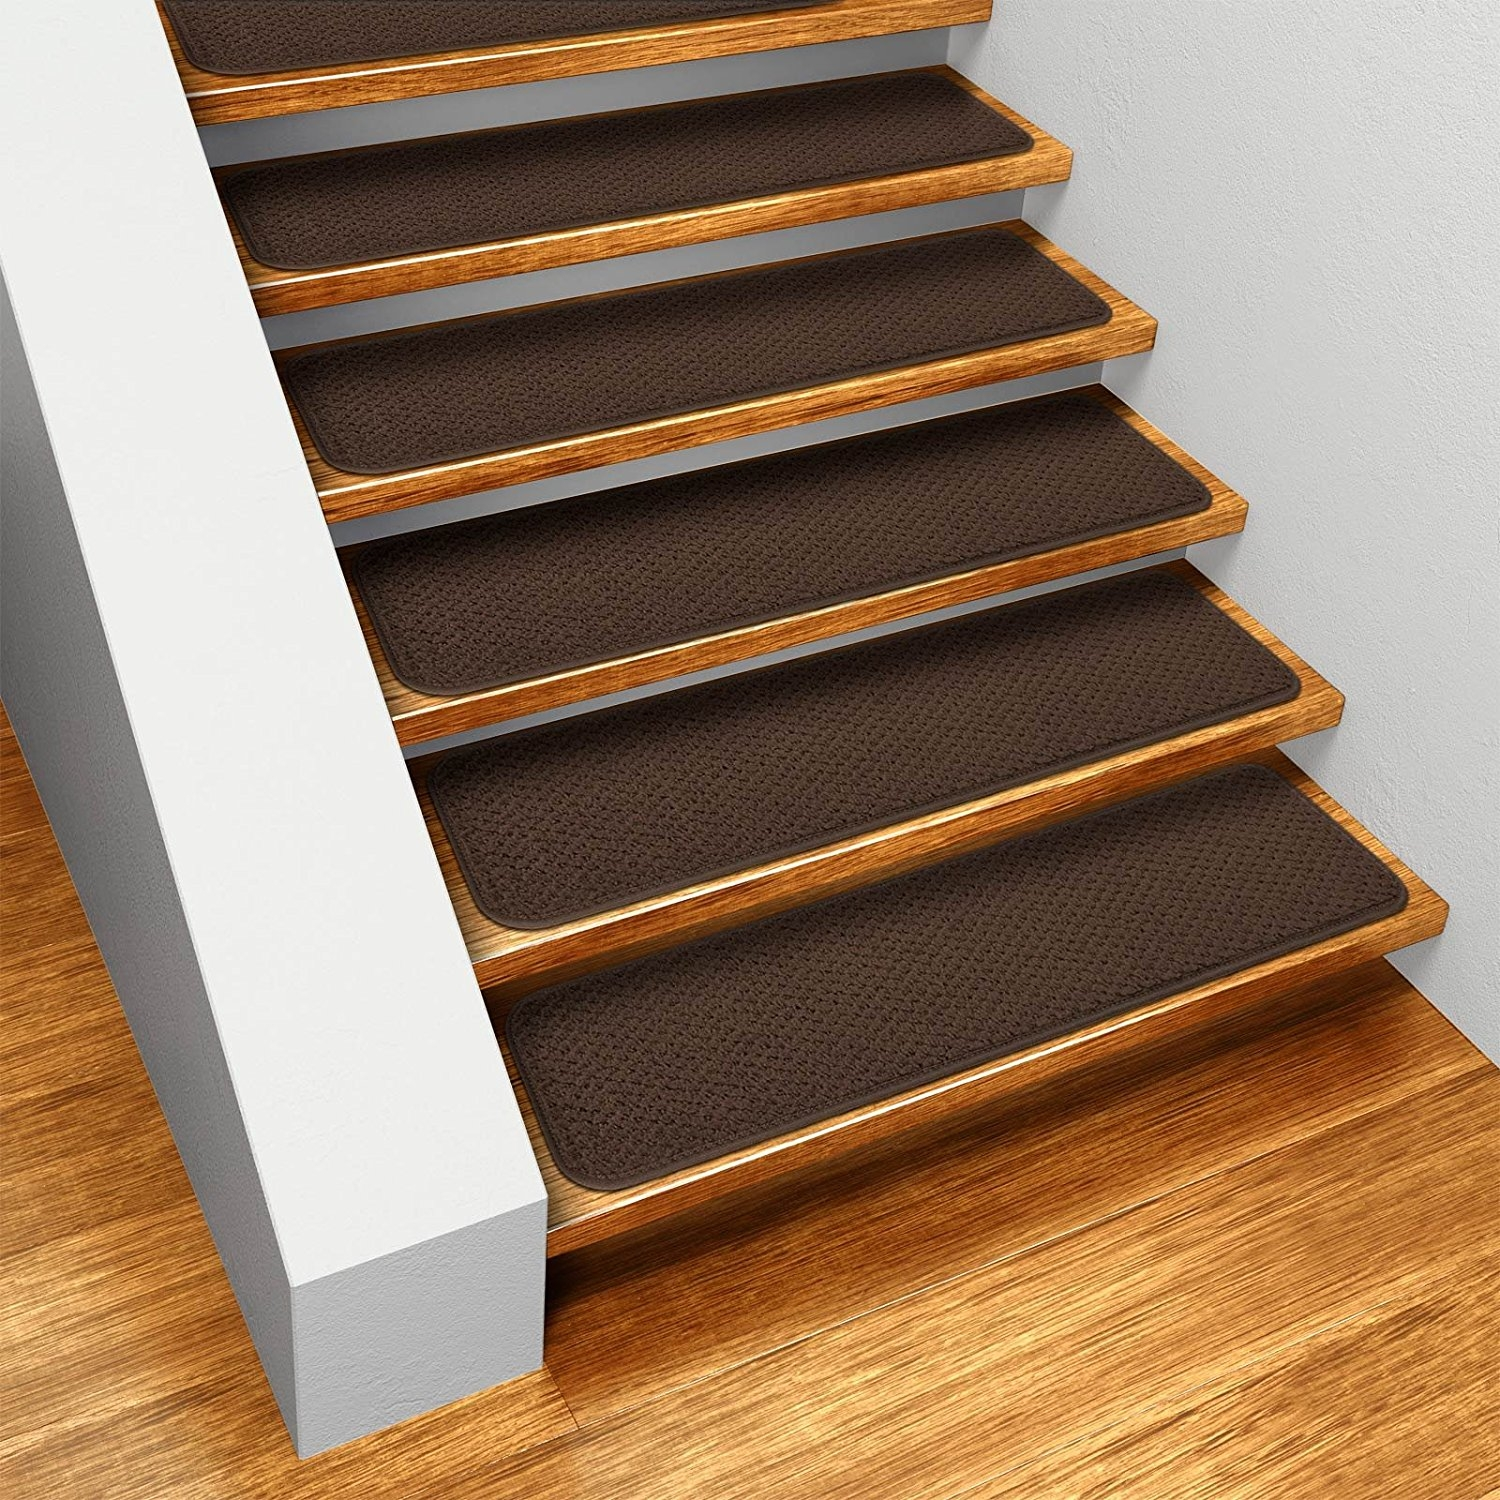 Amazon Set Of 12 Skid Resistant Carpet Stair Treads Intended For Carpet Stair Treads Non Slip (View 4 of 20)